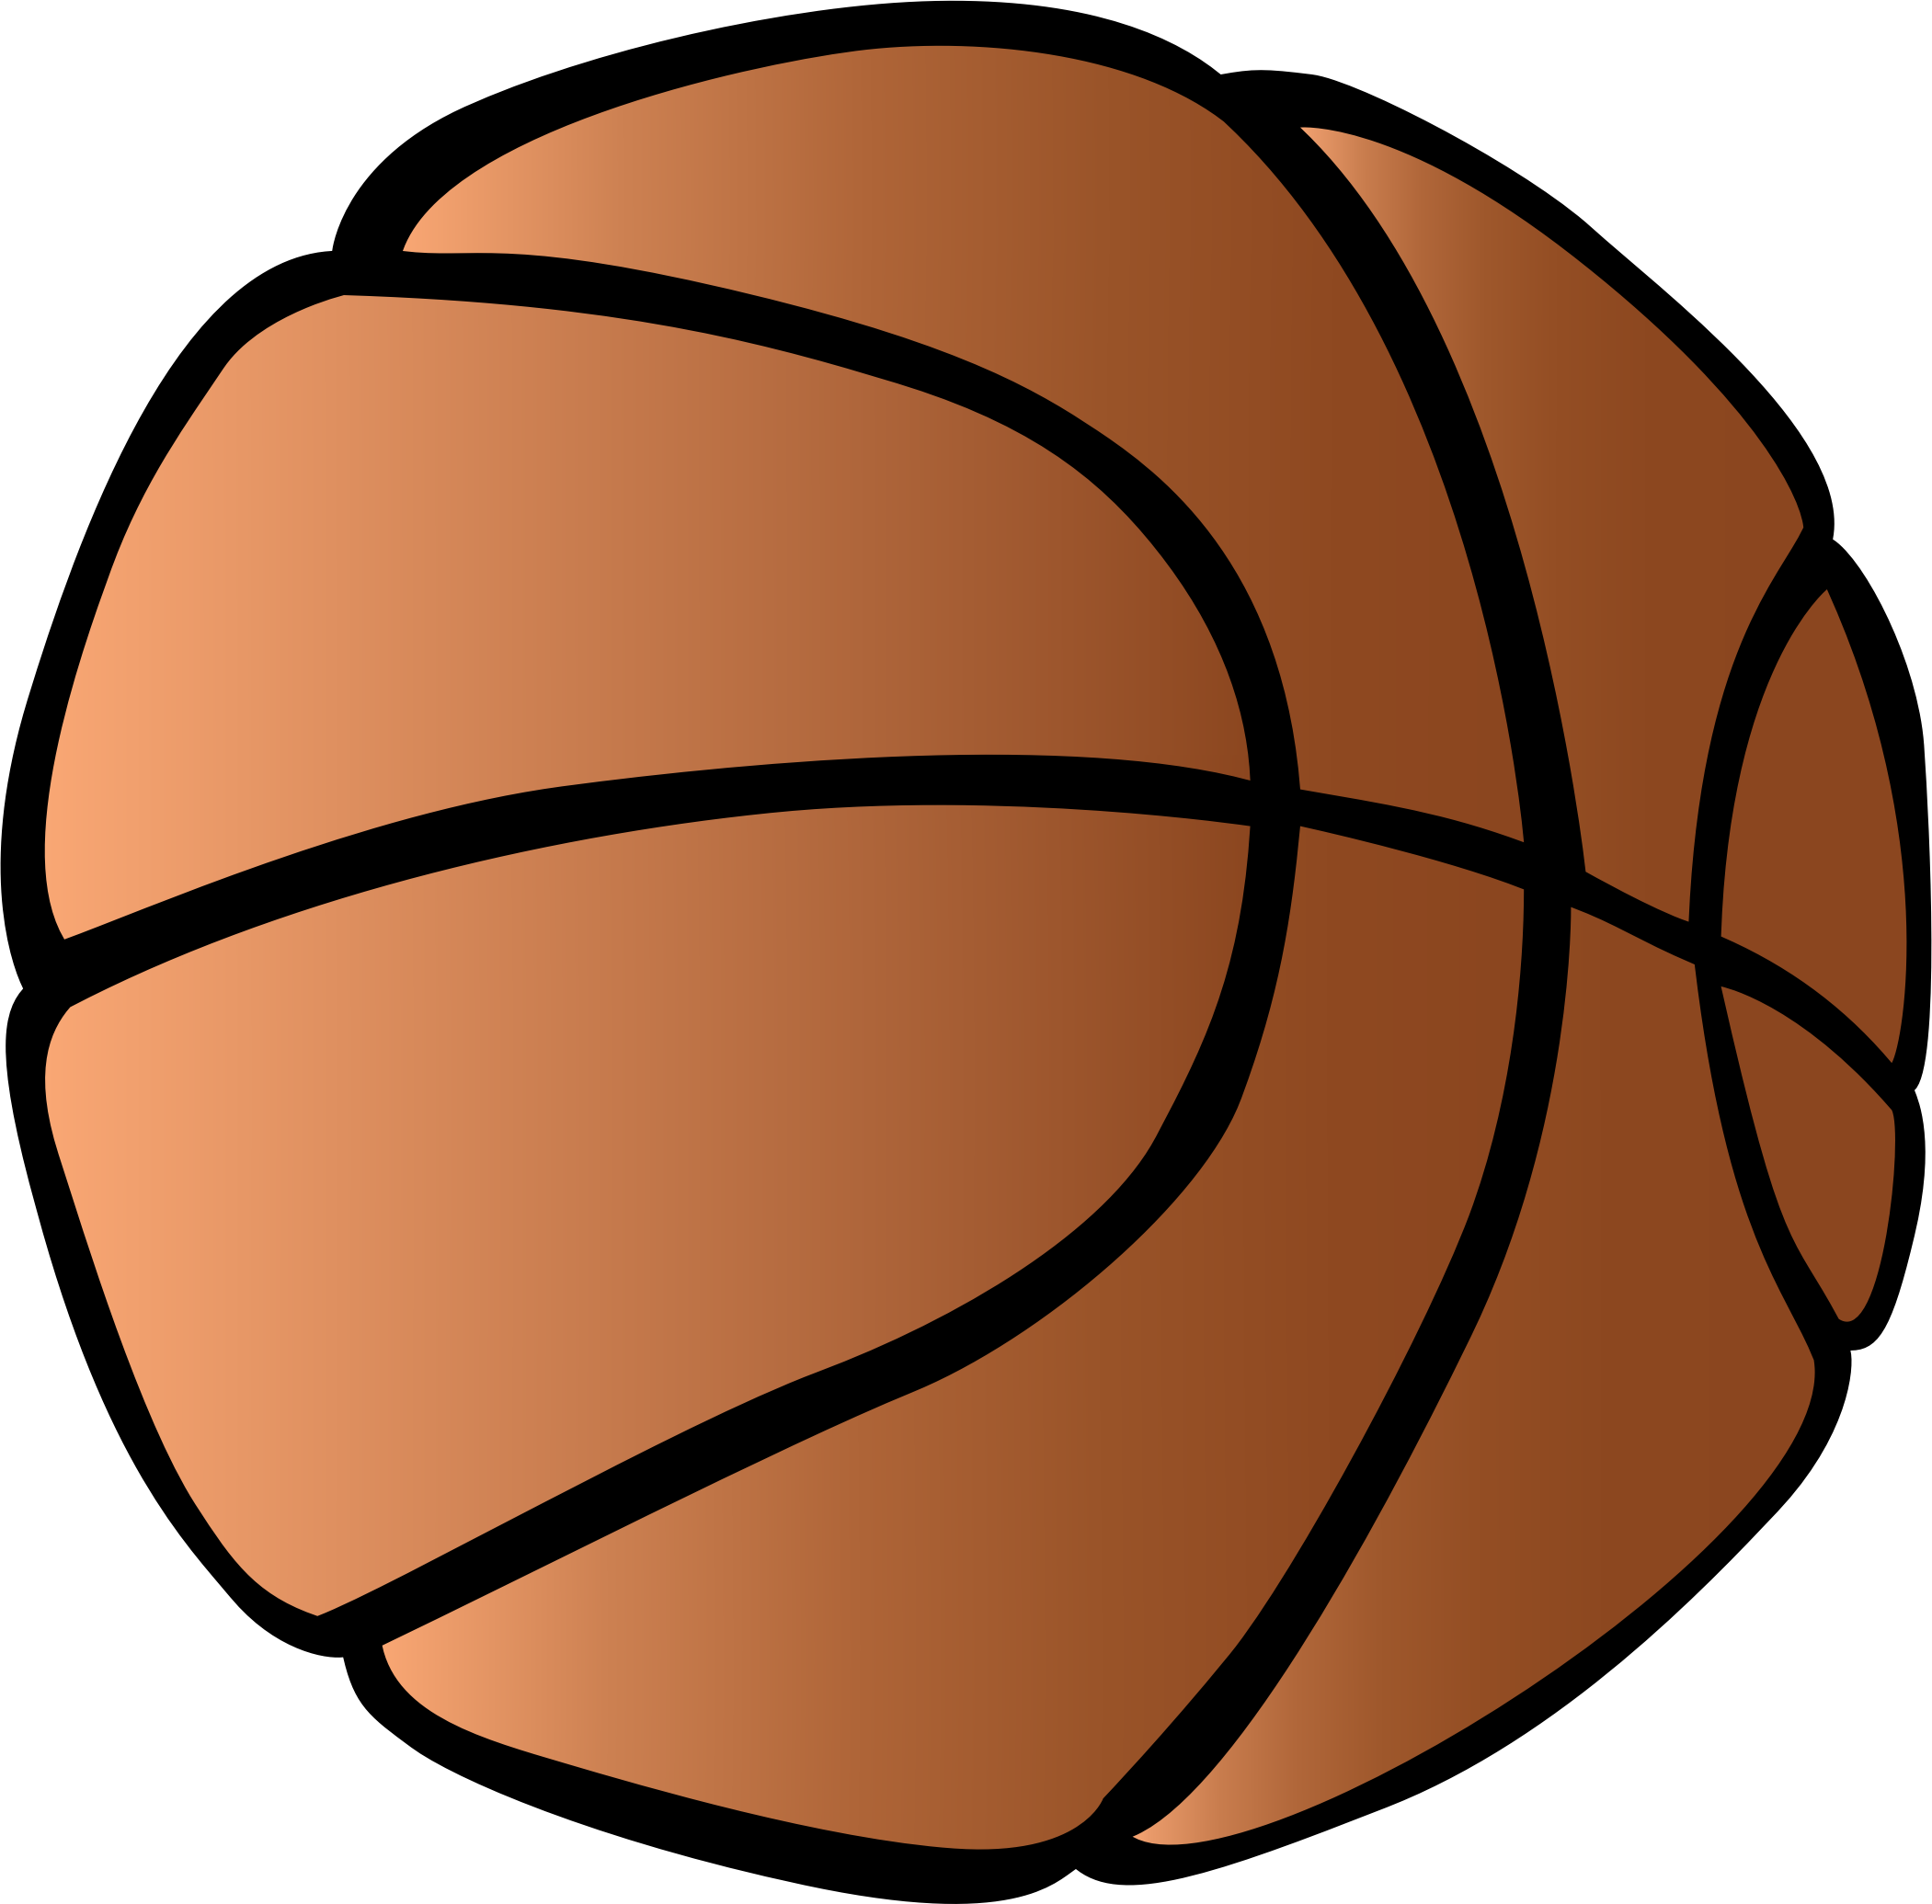 banner freeuse stock Basketball clipart. .